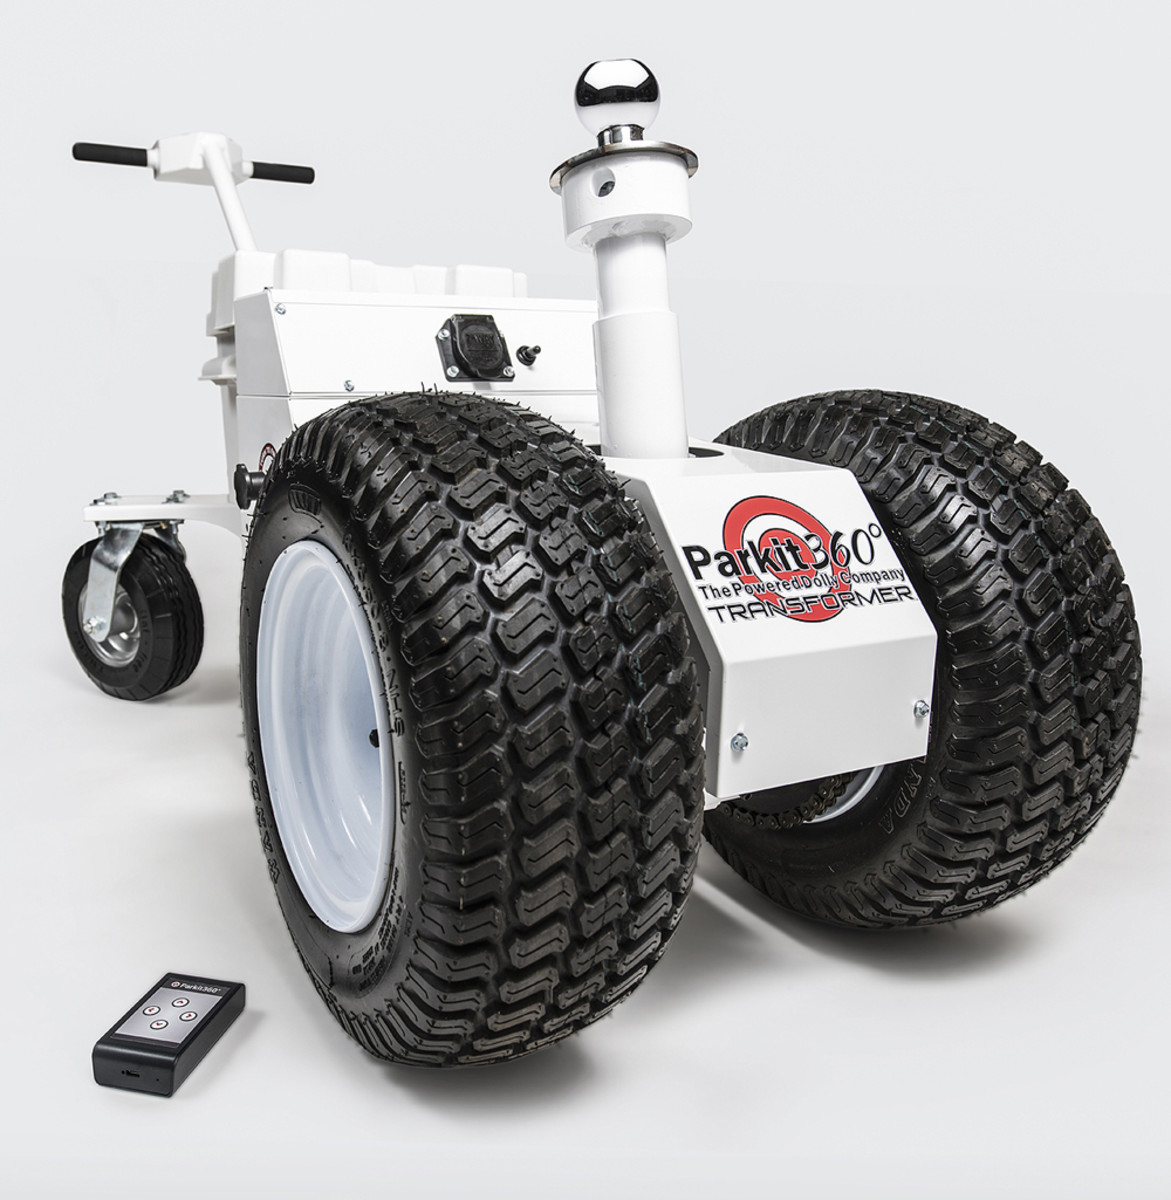 Parkit360 makes power trailer dollies that move trailers with payloads as large as 15,000 pounds within tight confines.